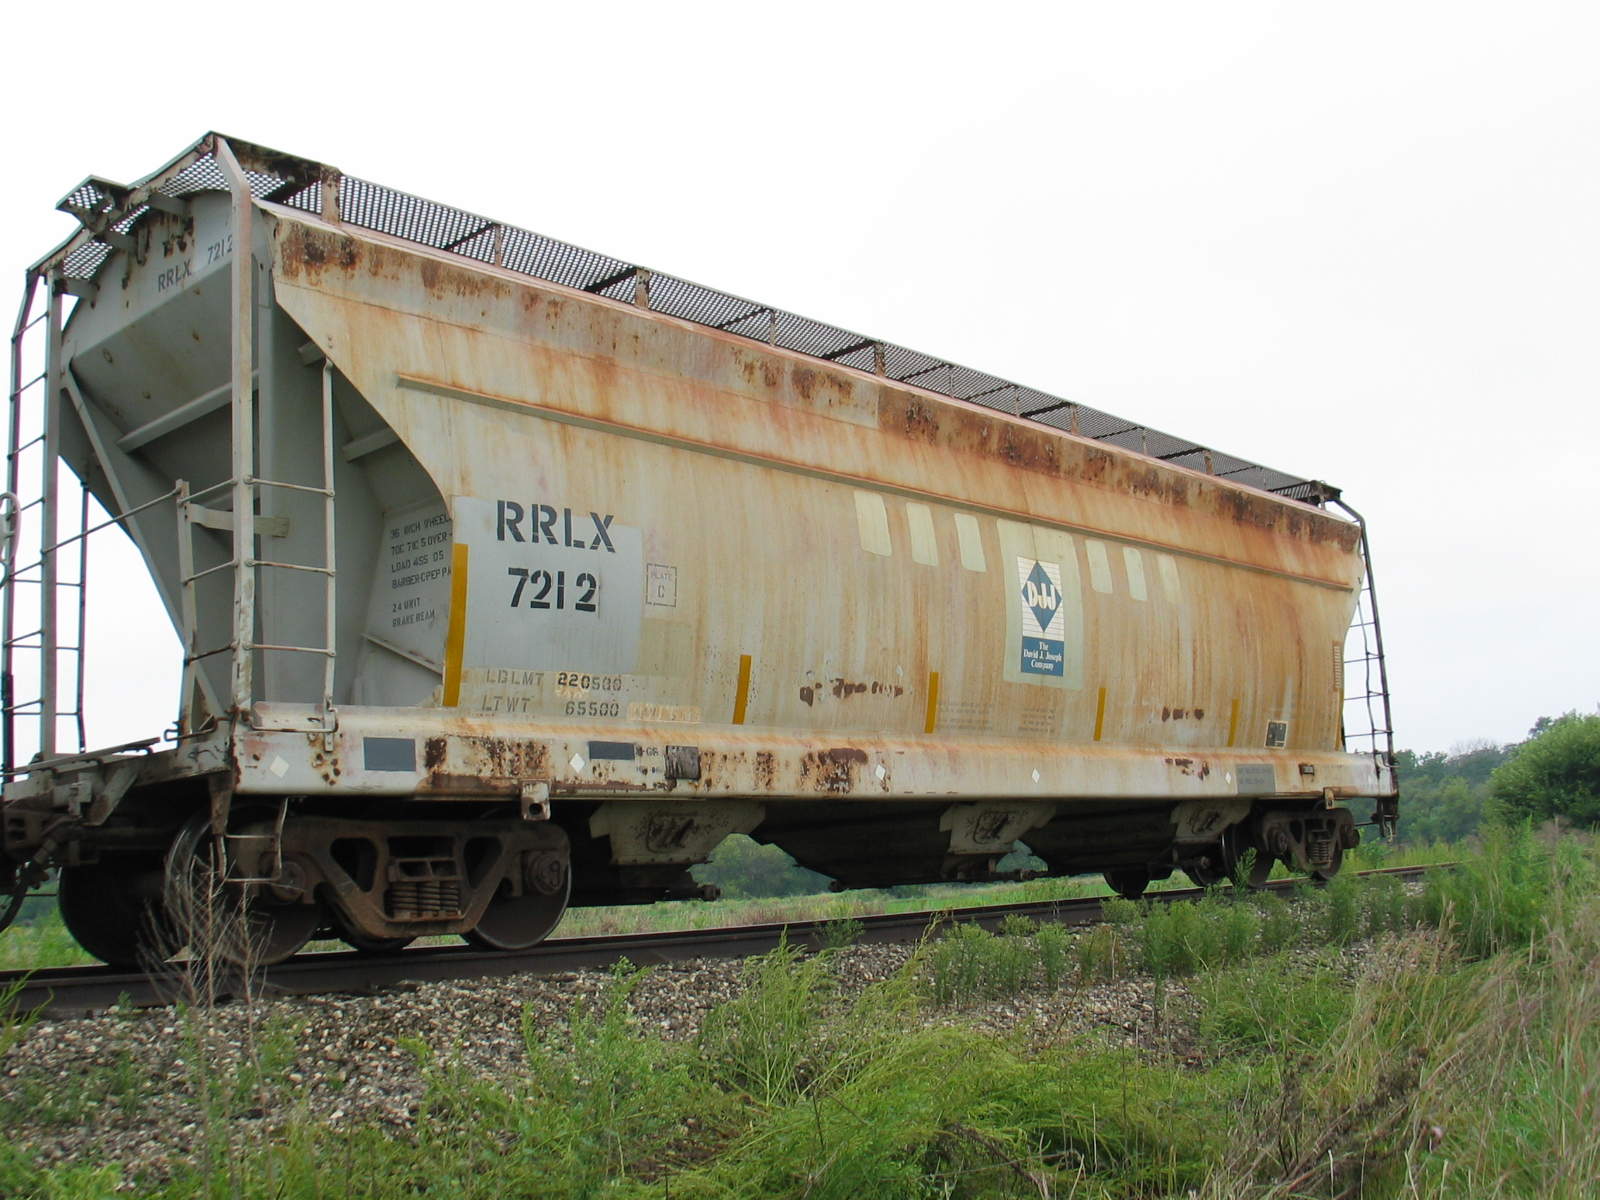 Cool potash hopper on Twin States siding, Sept. 10, 2006.